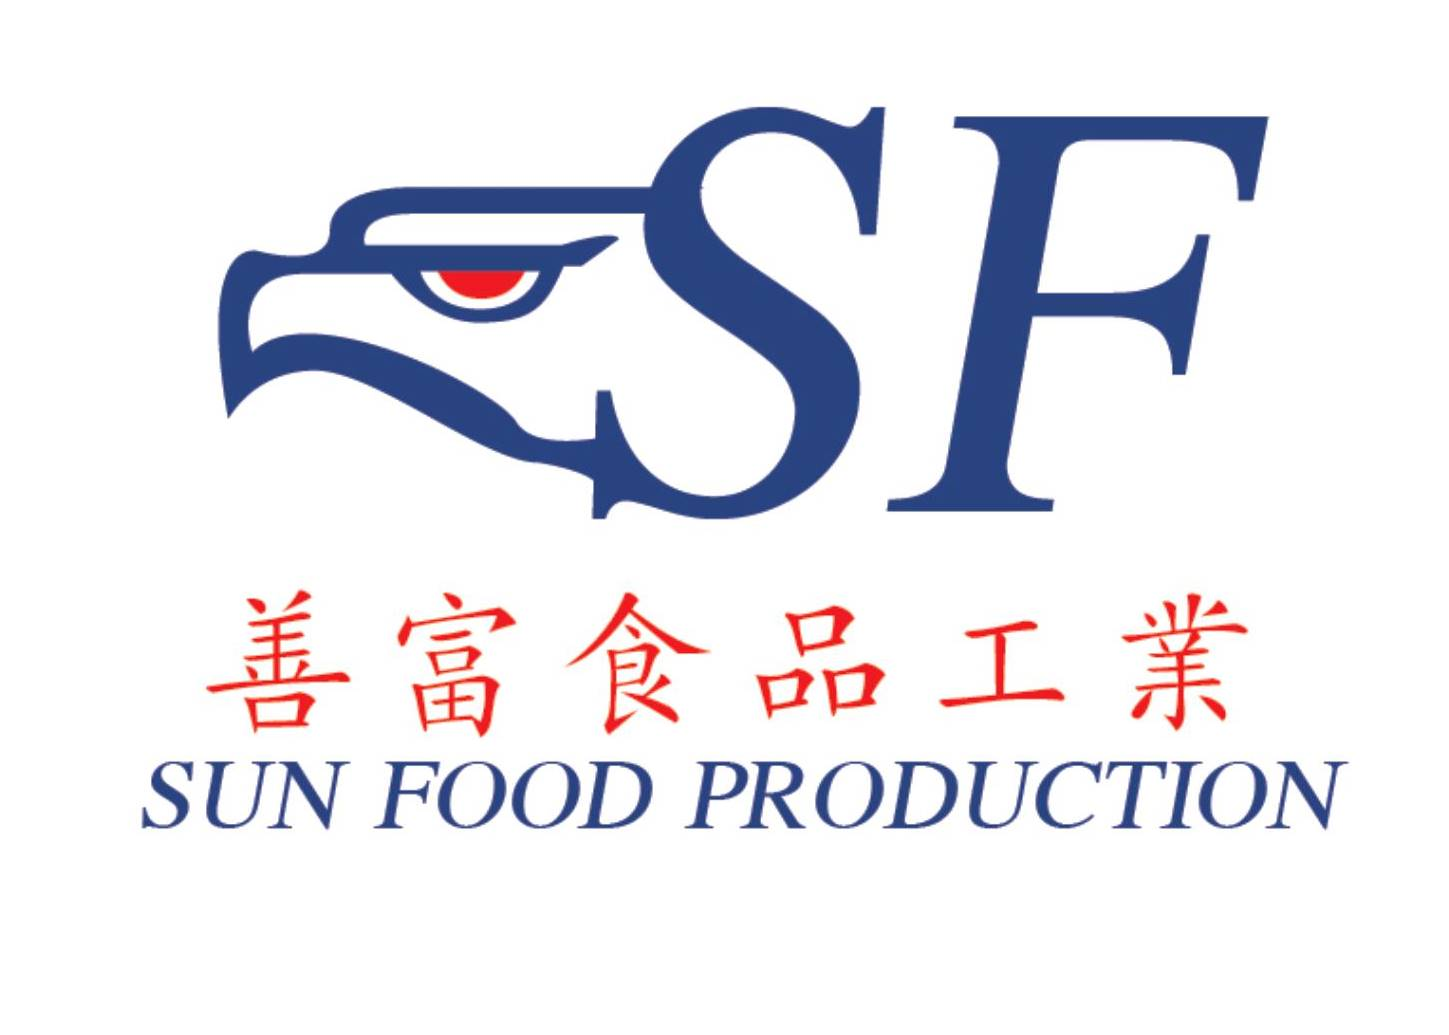 Sun Food Production